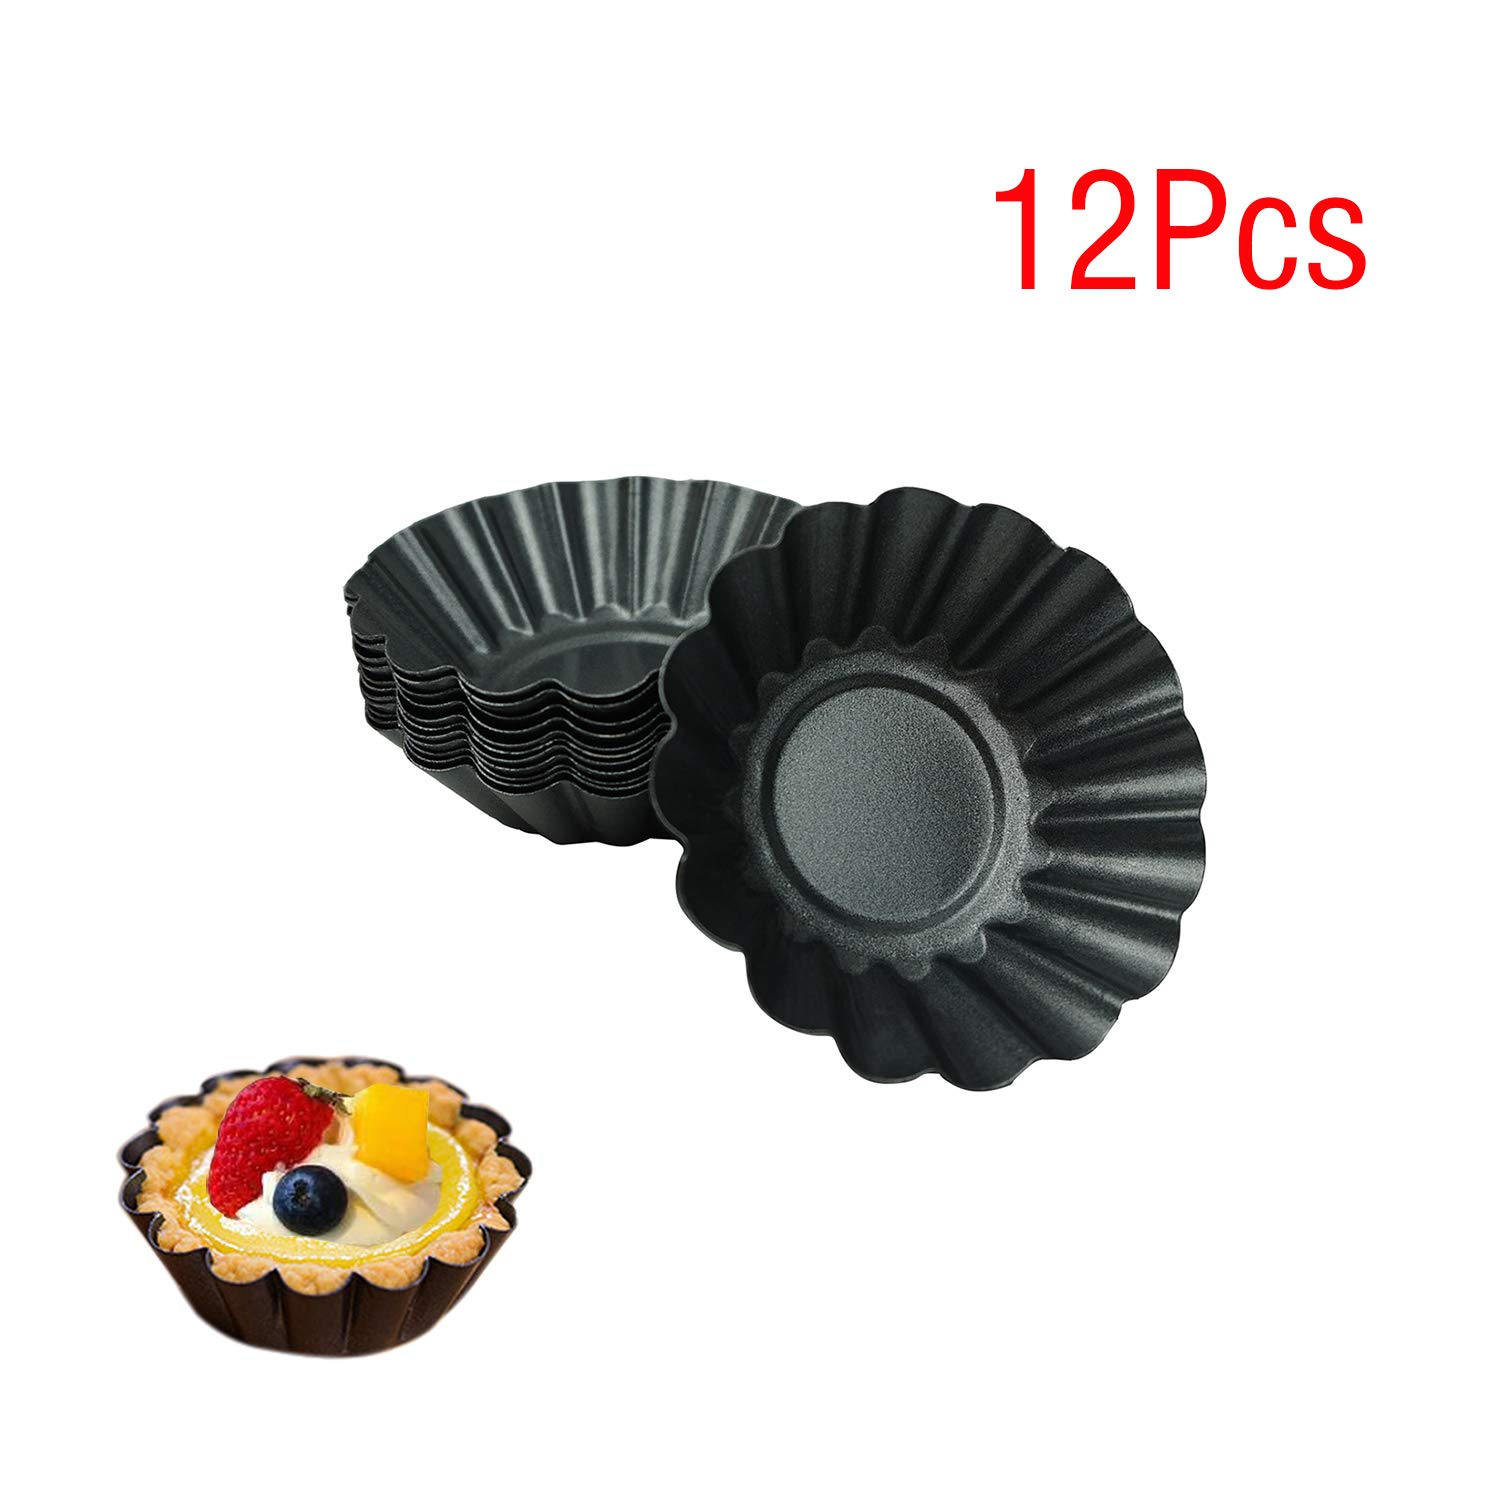 Proshopping 12 Packs Egg Tart Pan, Non-stick Carbon Steel Egg Tart Molds,Tartlet Tins,Mini Pie Mould, Muffin Cupcake Pudding Baking Cup Maker - for Pies, Chinese Egg Tart, Cakes (Biger Size 3''x 0.9'')